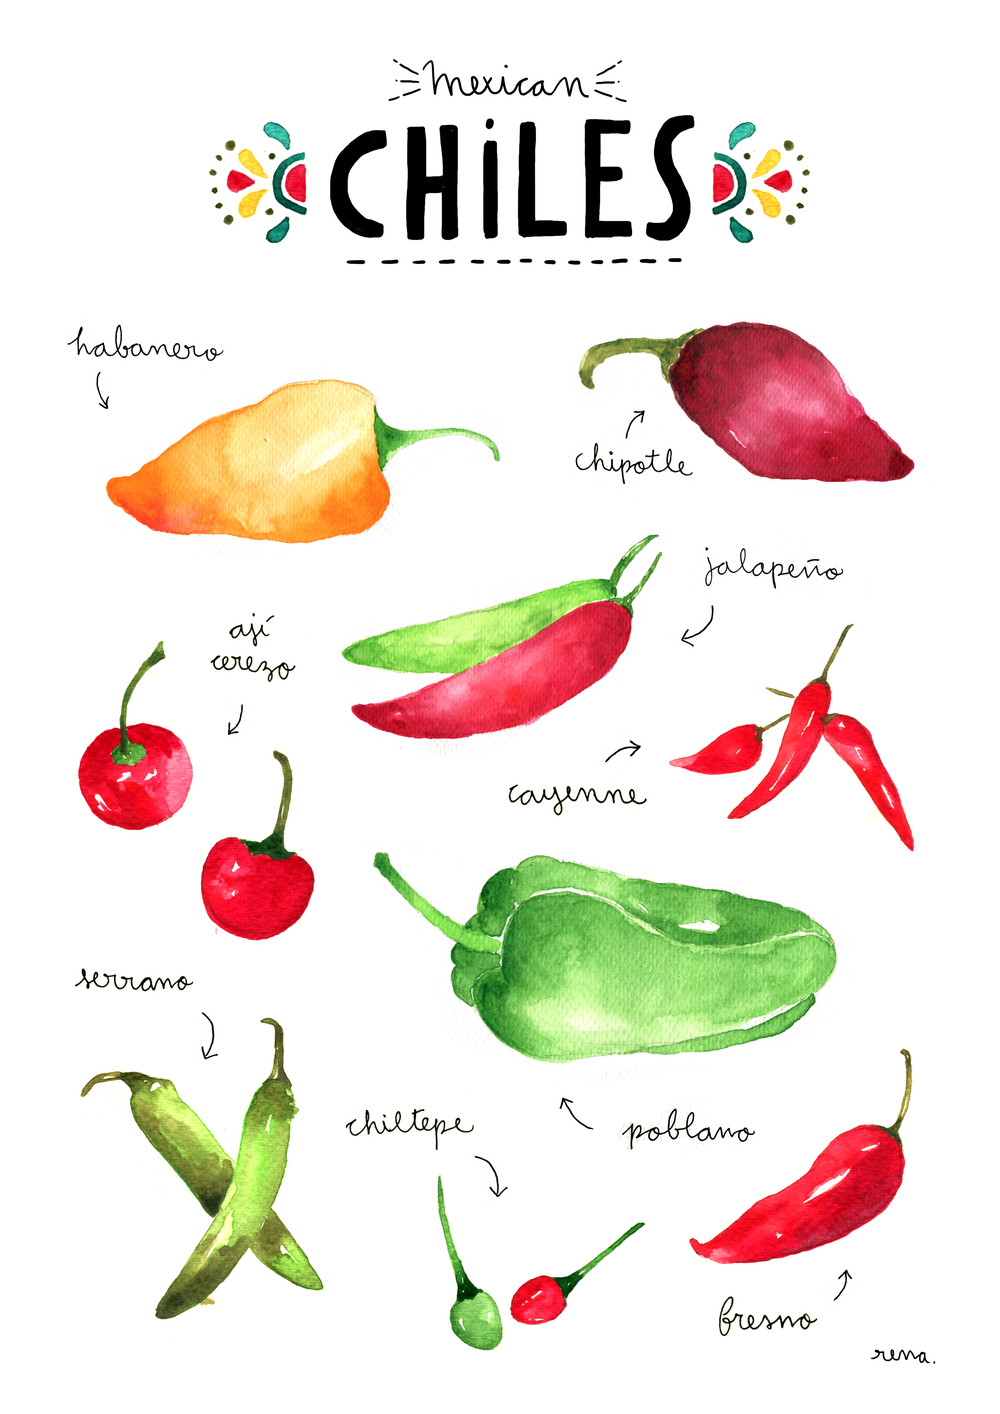 mexican_chiles.jpg